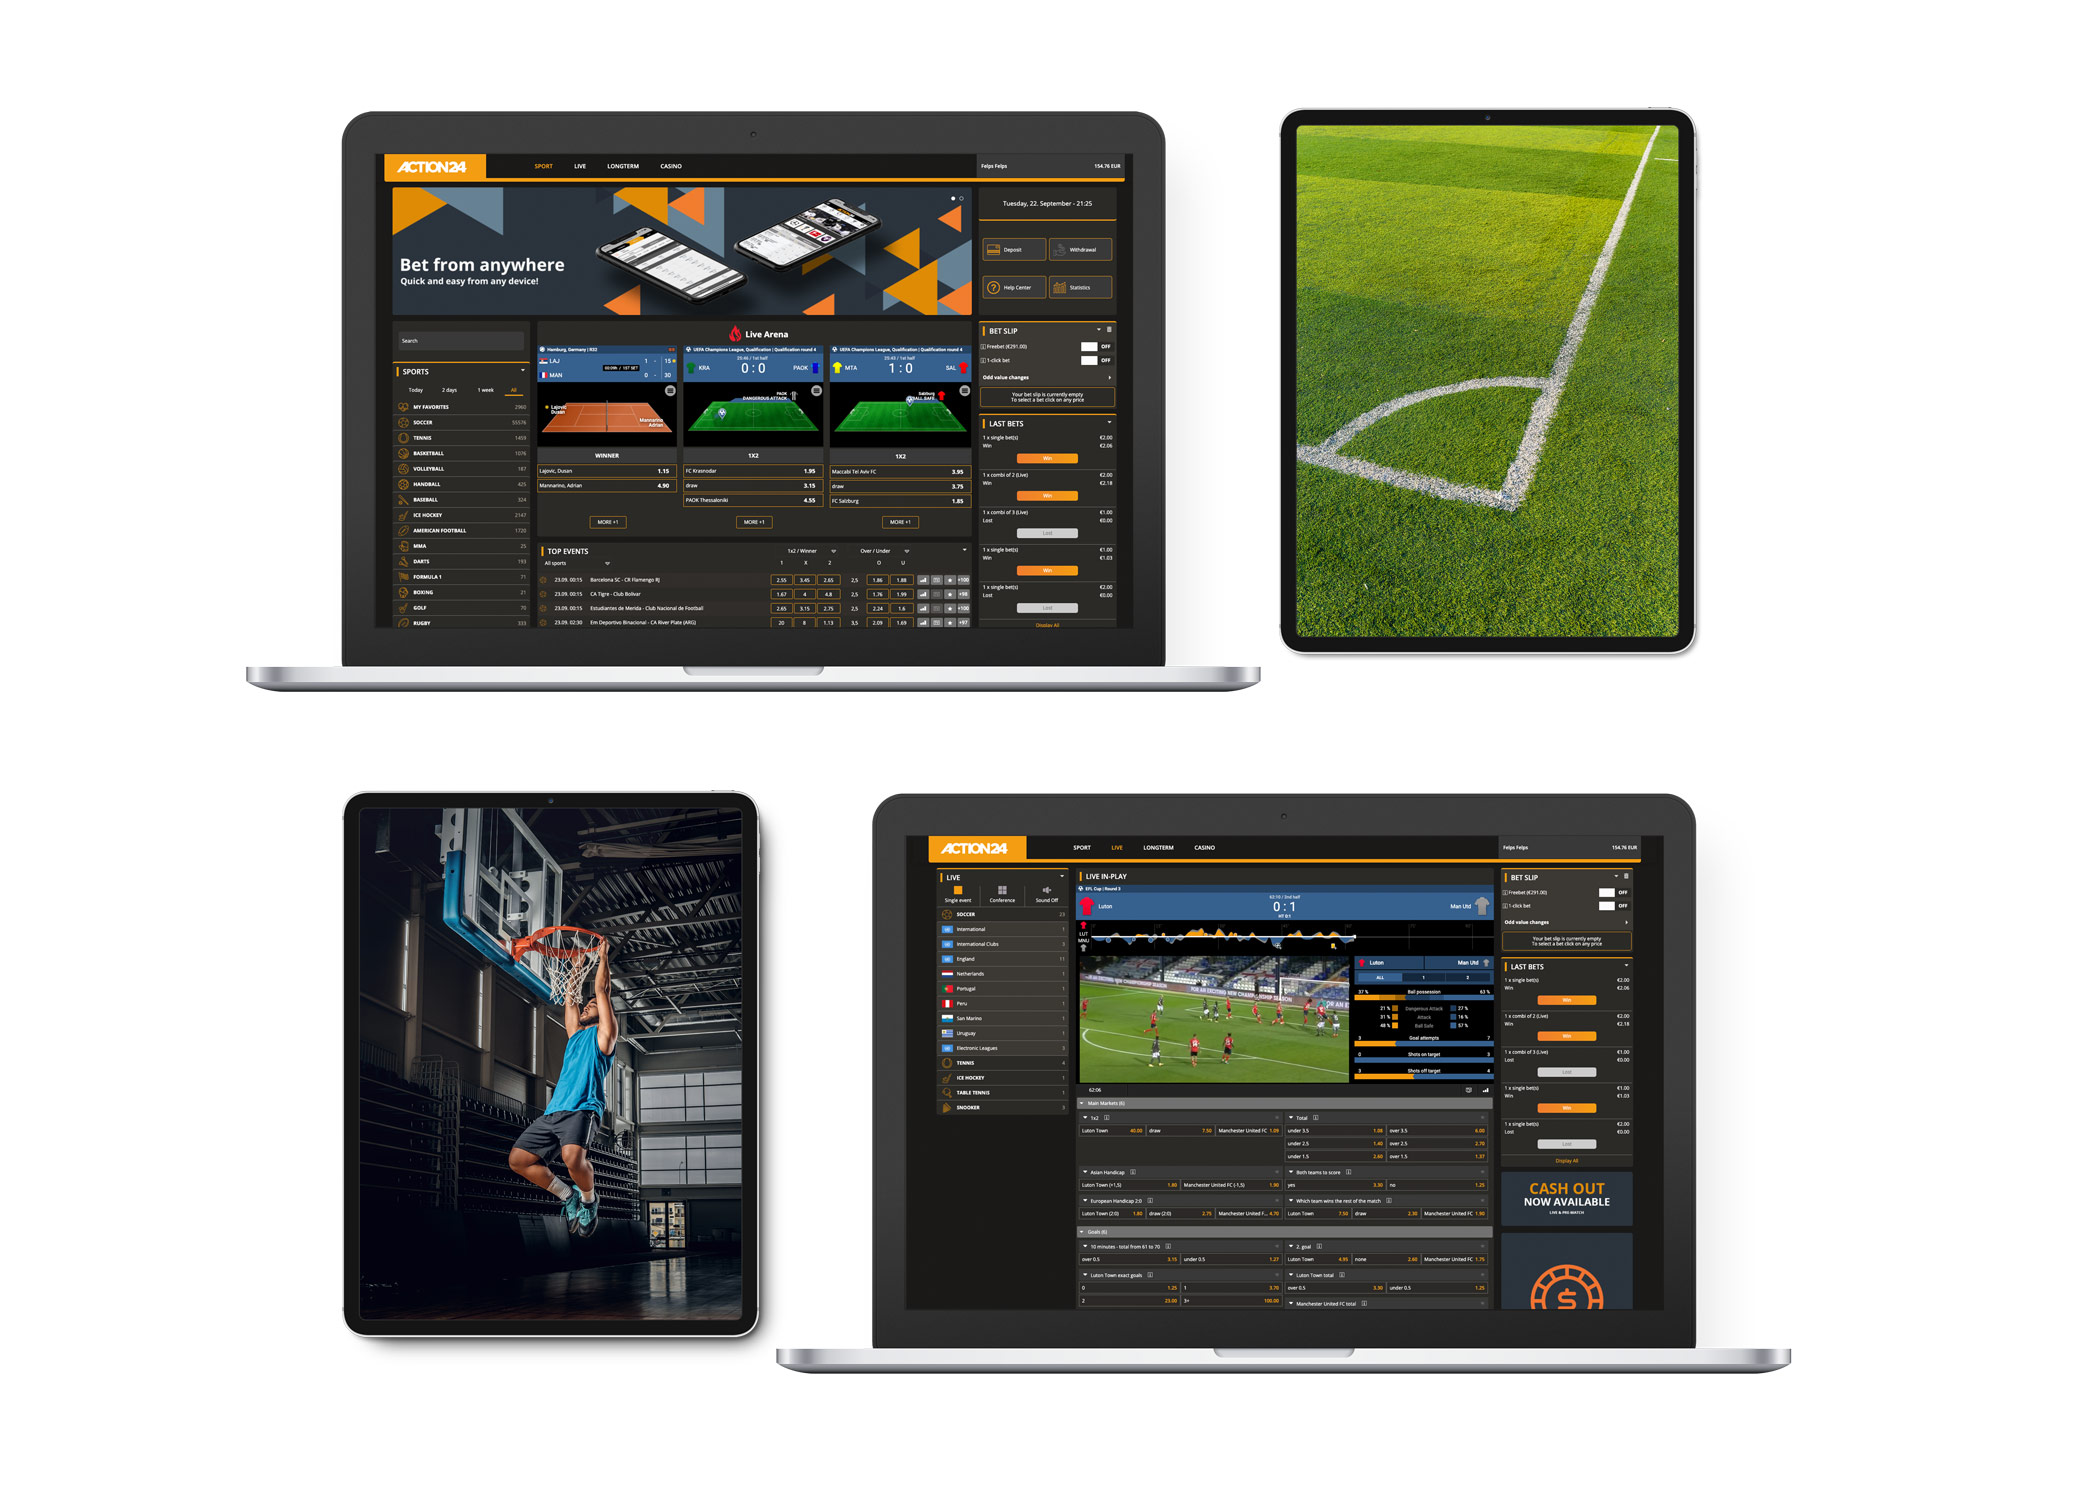 Sports betting iGaming Software Plattform